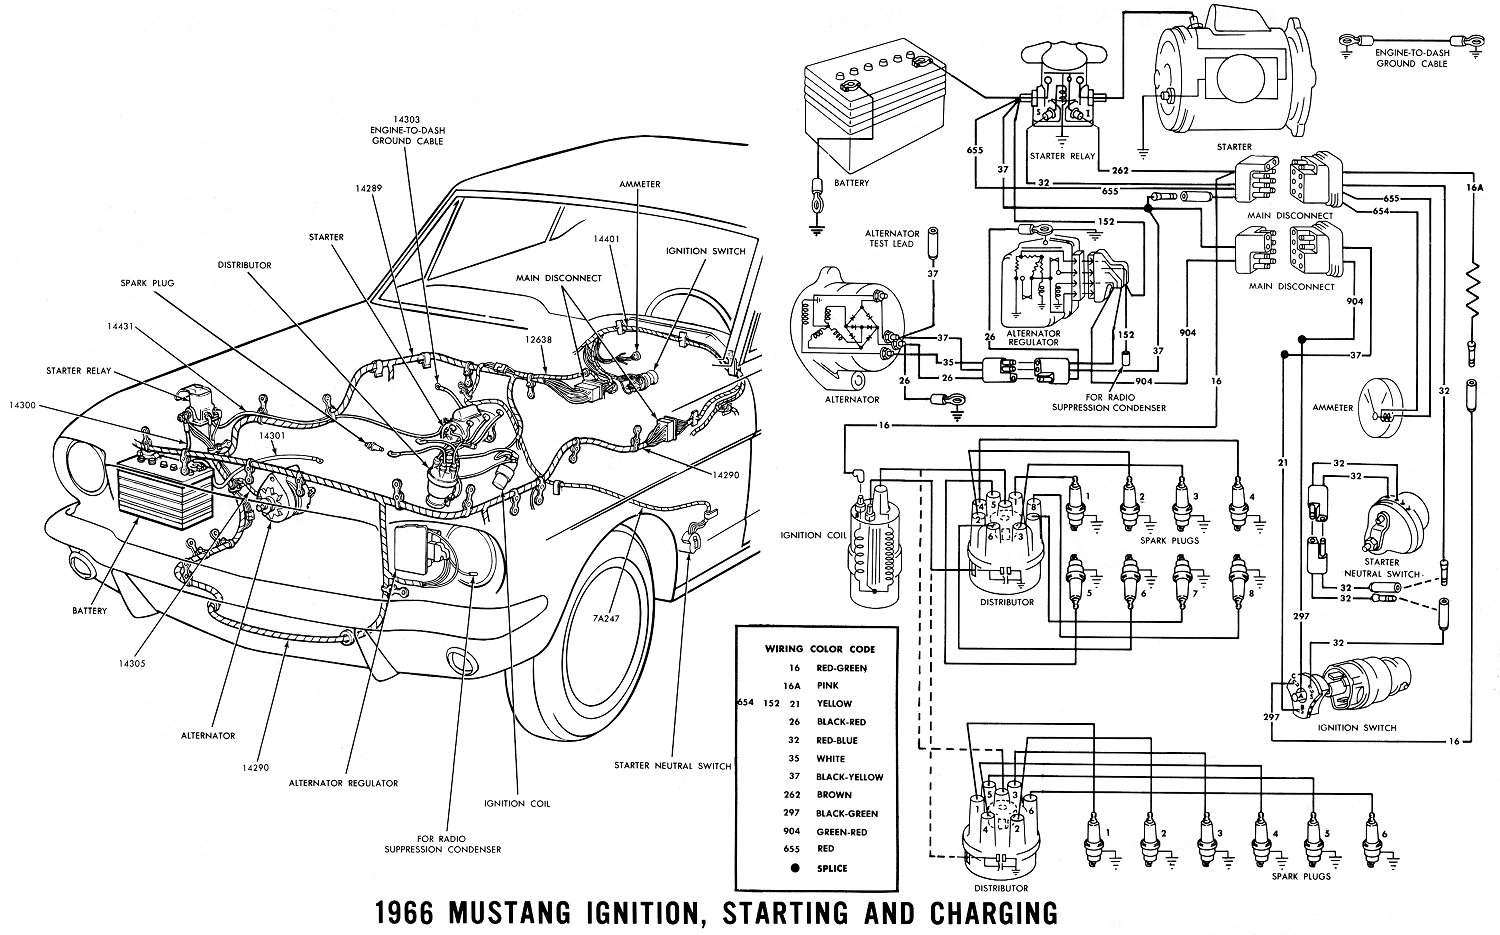 66ignit 1966 mustang wiring diagrams average joe restoration 1965 mustang alternator wiring diagram at aneh.co